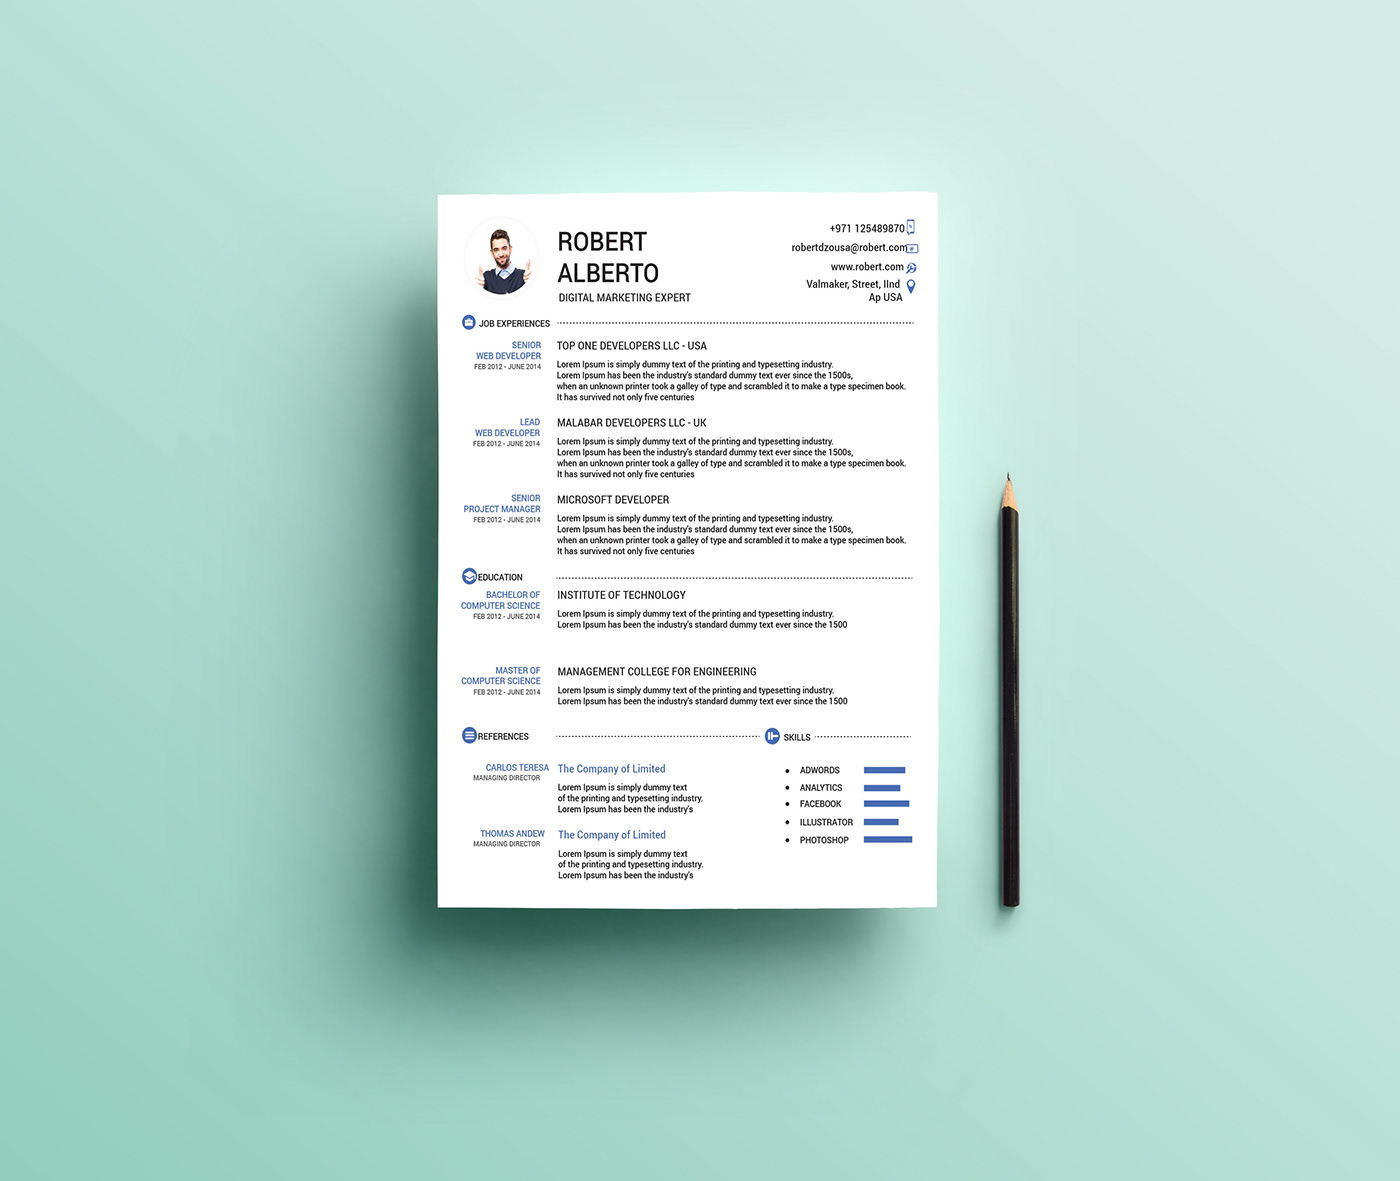 free one resume templates create on microsoft word clean template welder objective Resume Create Resume On Microsoft Word